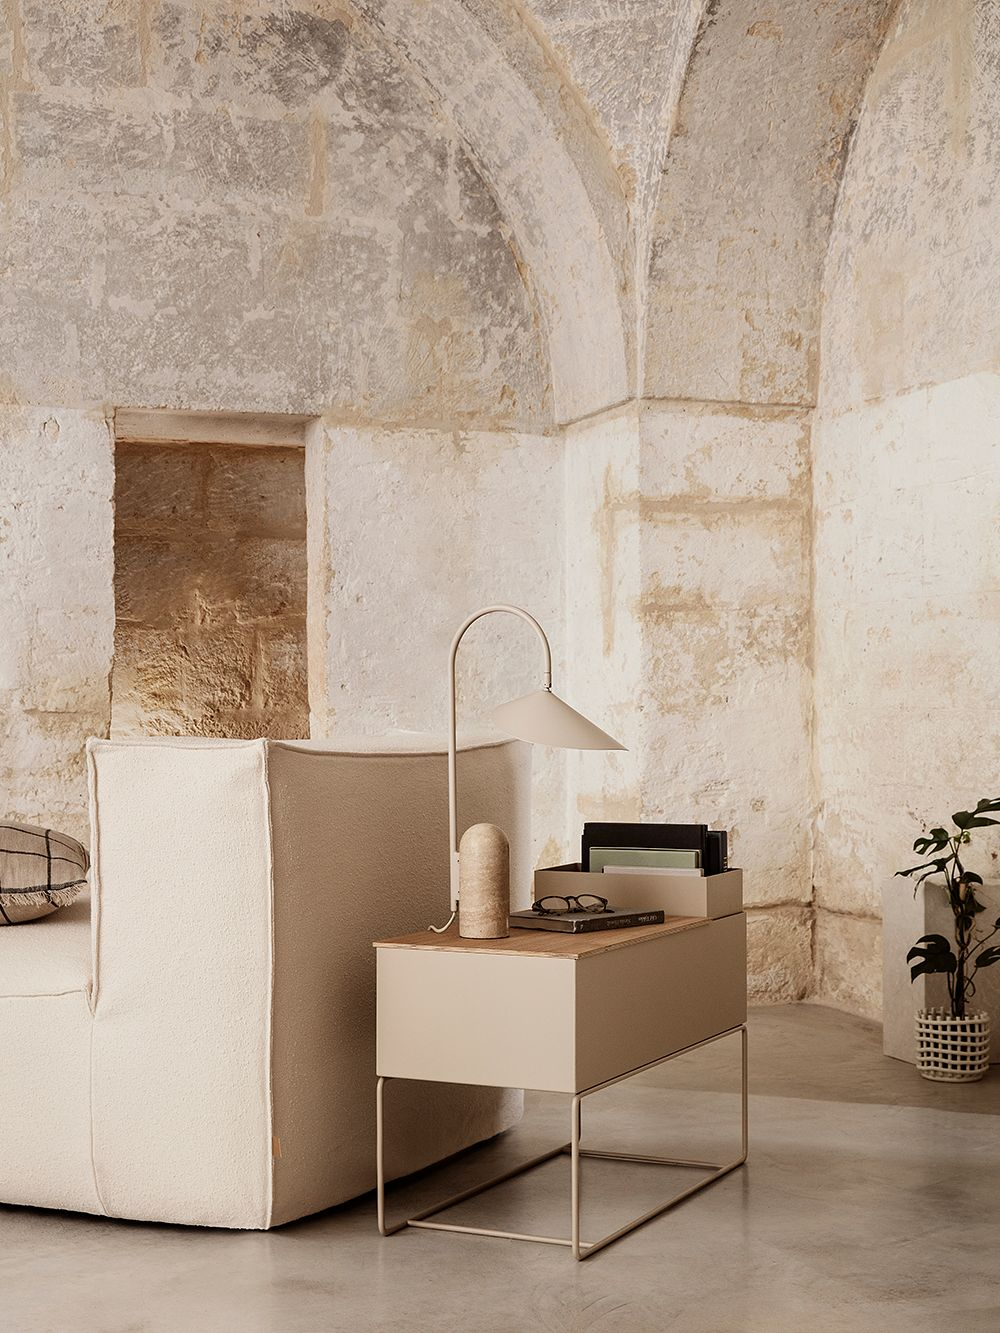 Ferm Living's Plant Box in a living room.